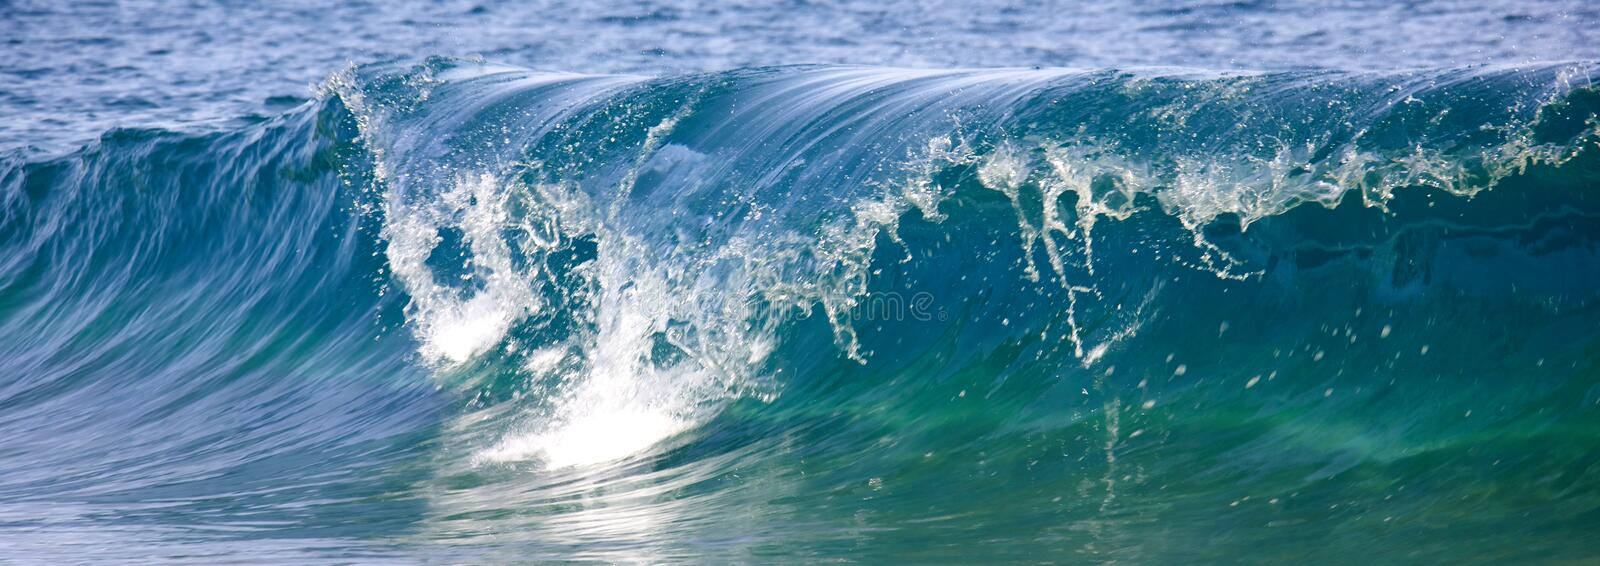 Waves breaking on the shore stock images